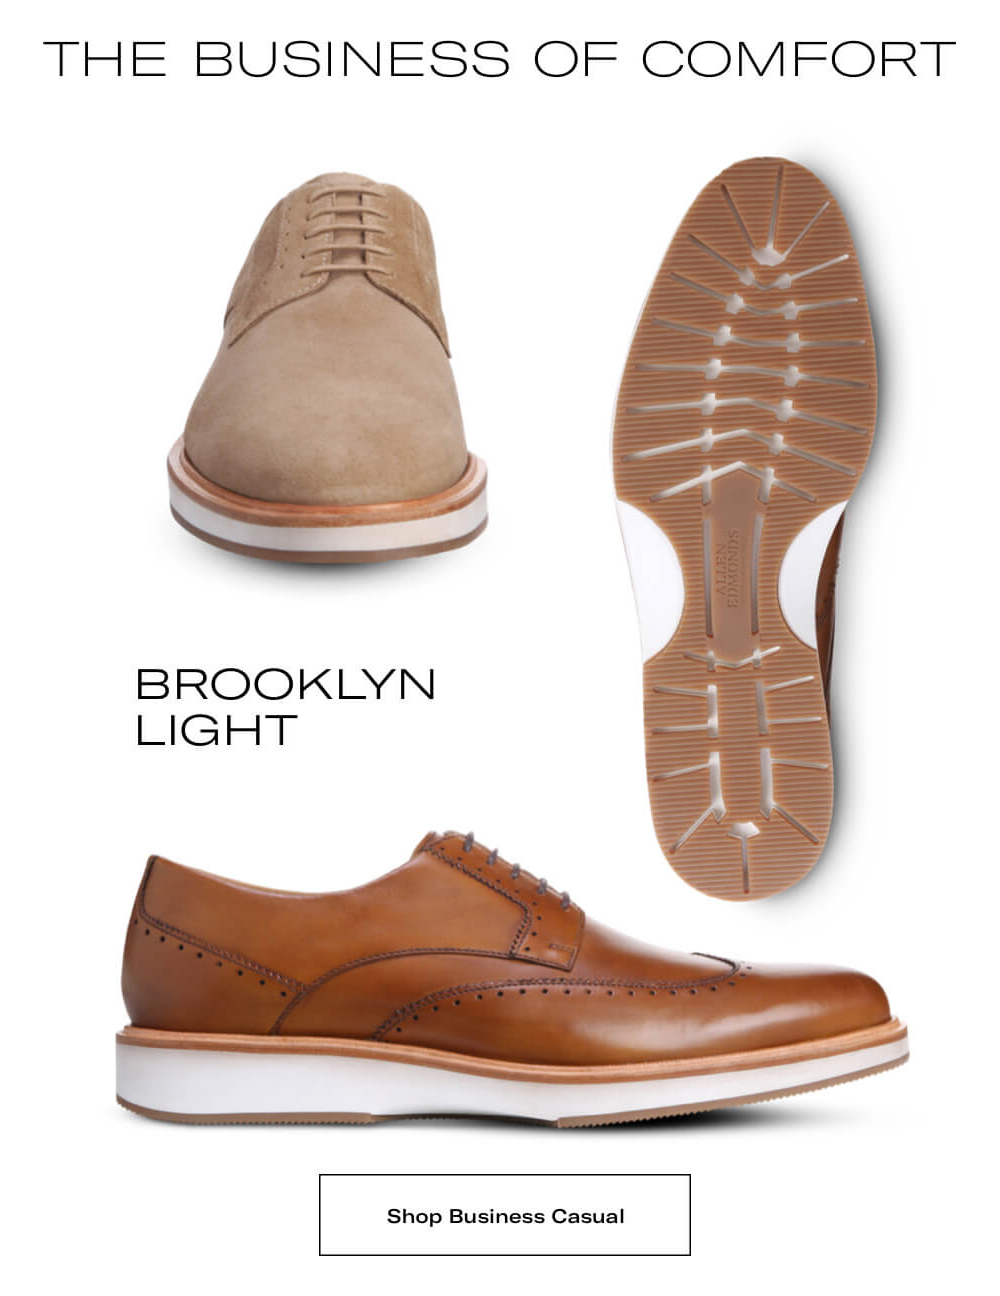 the Business of comfort, Brooklyn Light. Shop Business Casual